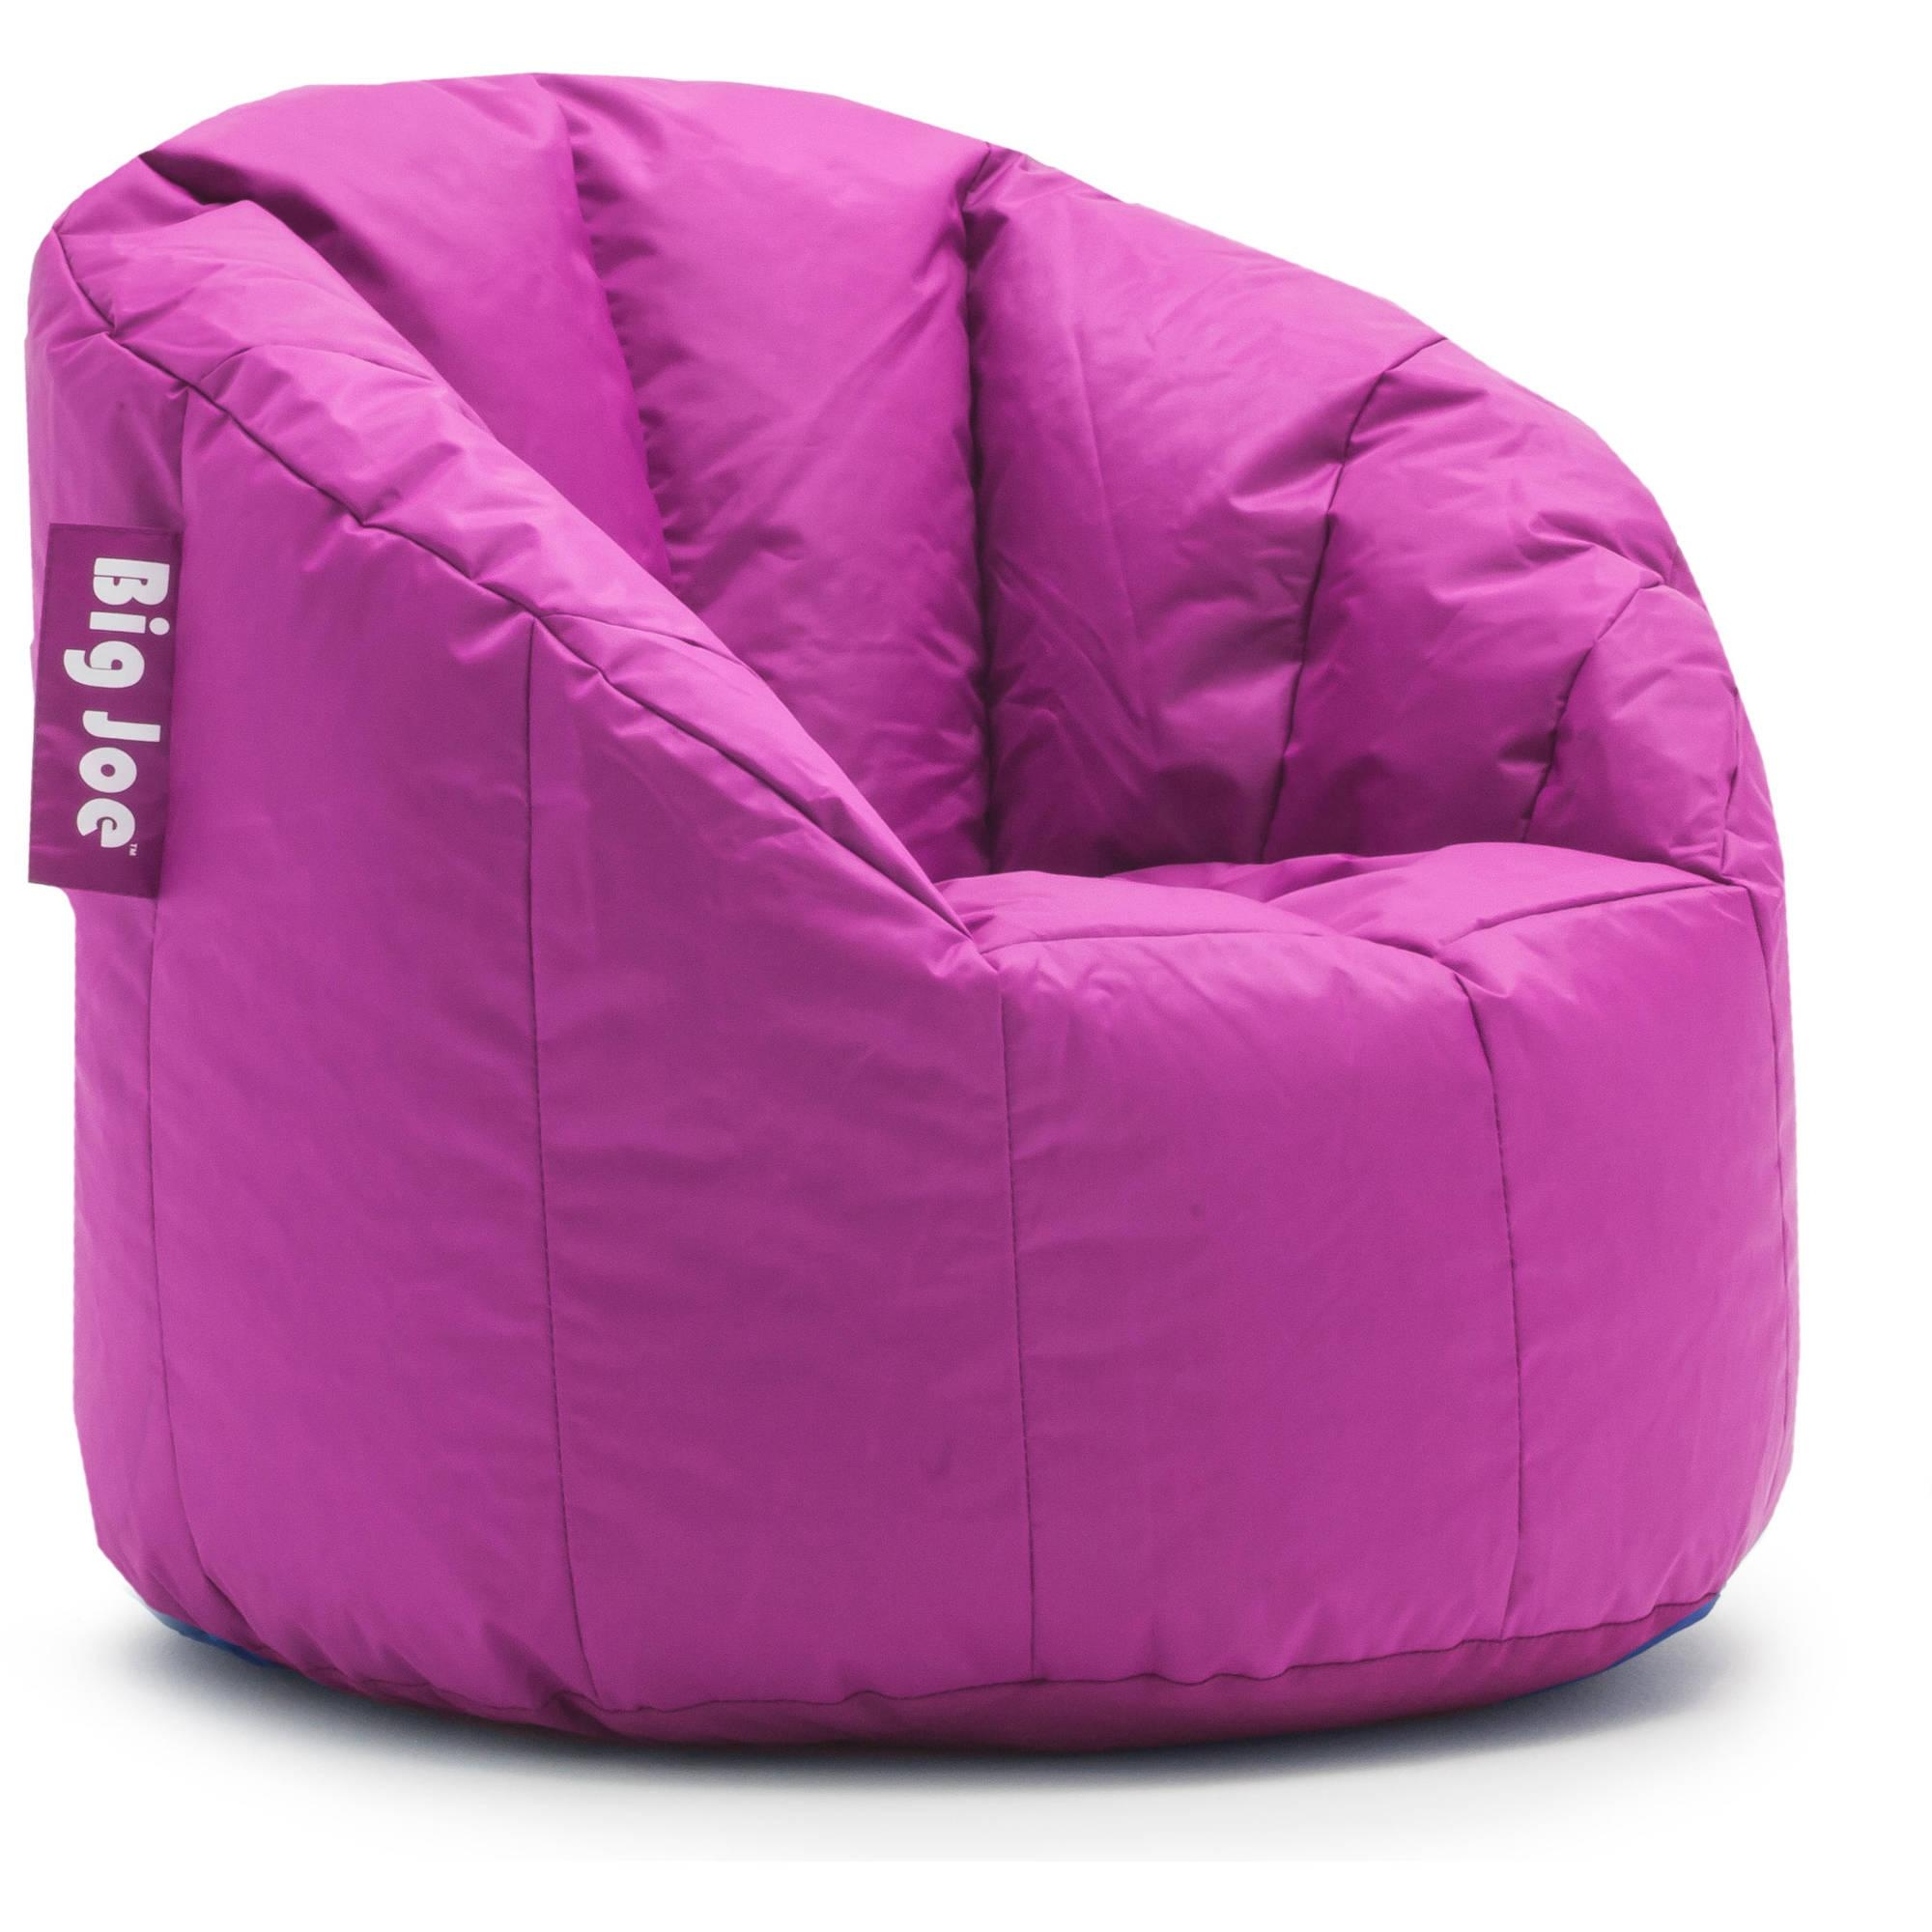 Furniture & Sofa: Fascinating Big Joe Lumin Bean Bag Chair With Intended For Big Joe Sofas (View 12 of 20)